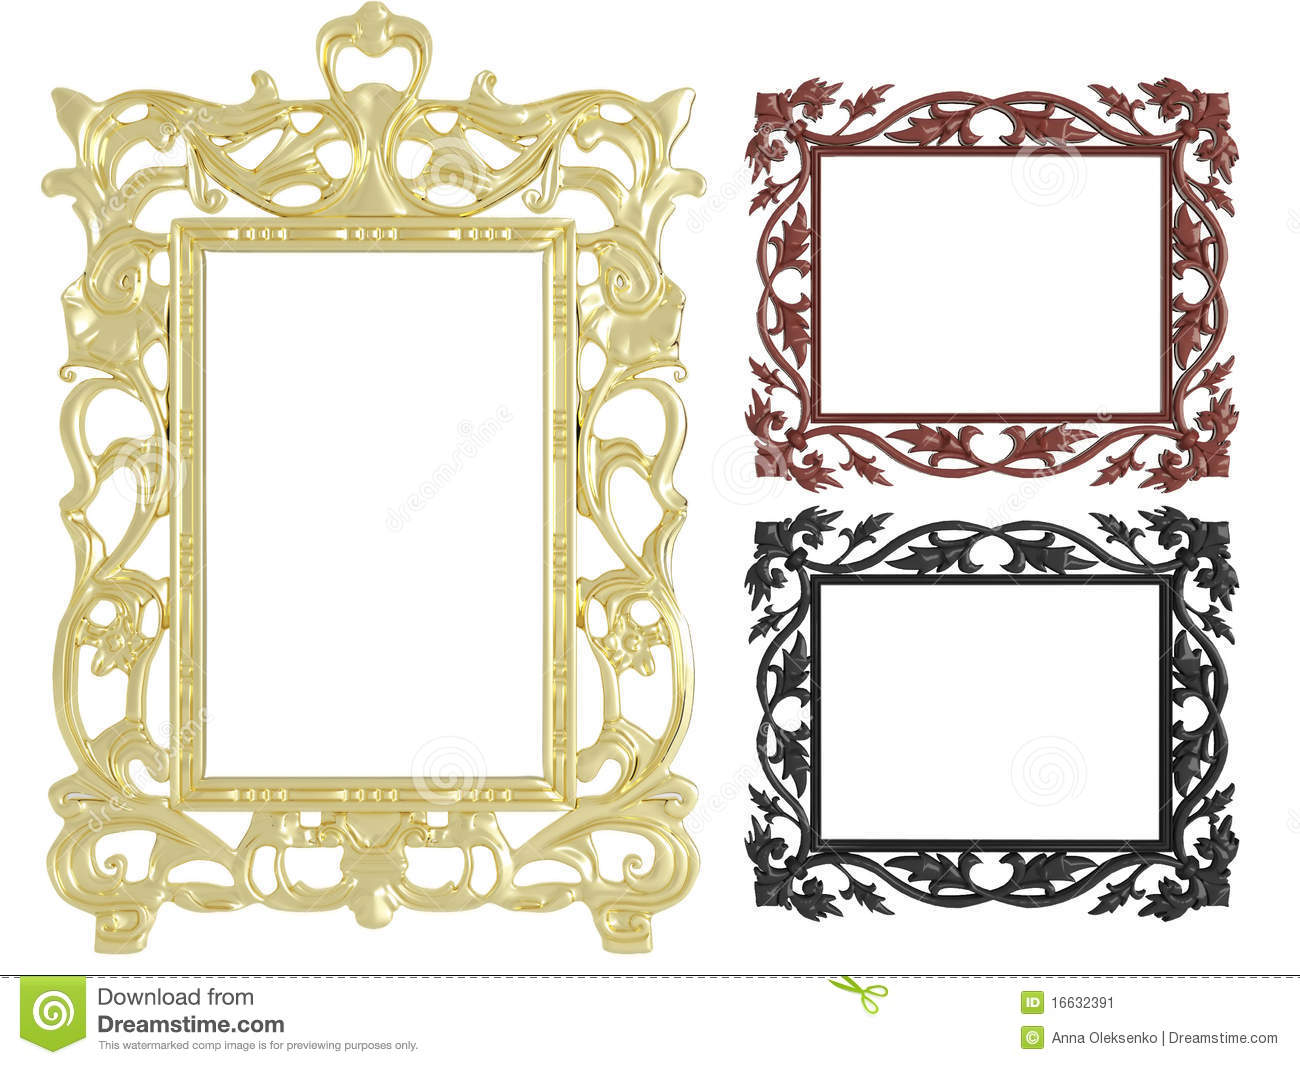 Decorative Wall Frames Photos : Decorative vintage empty wall picture frames stock image